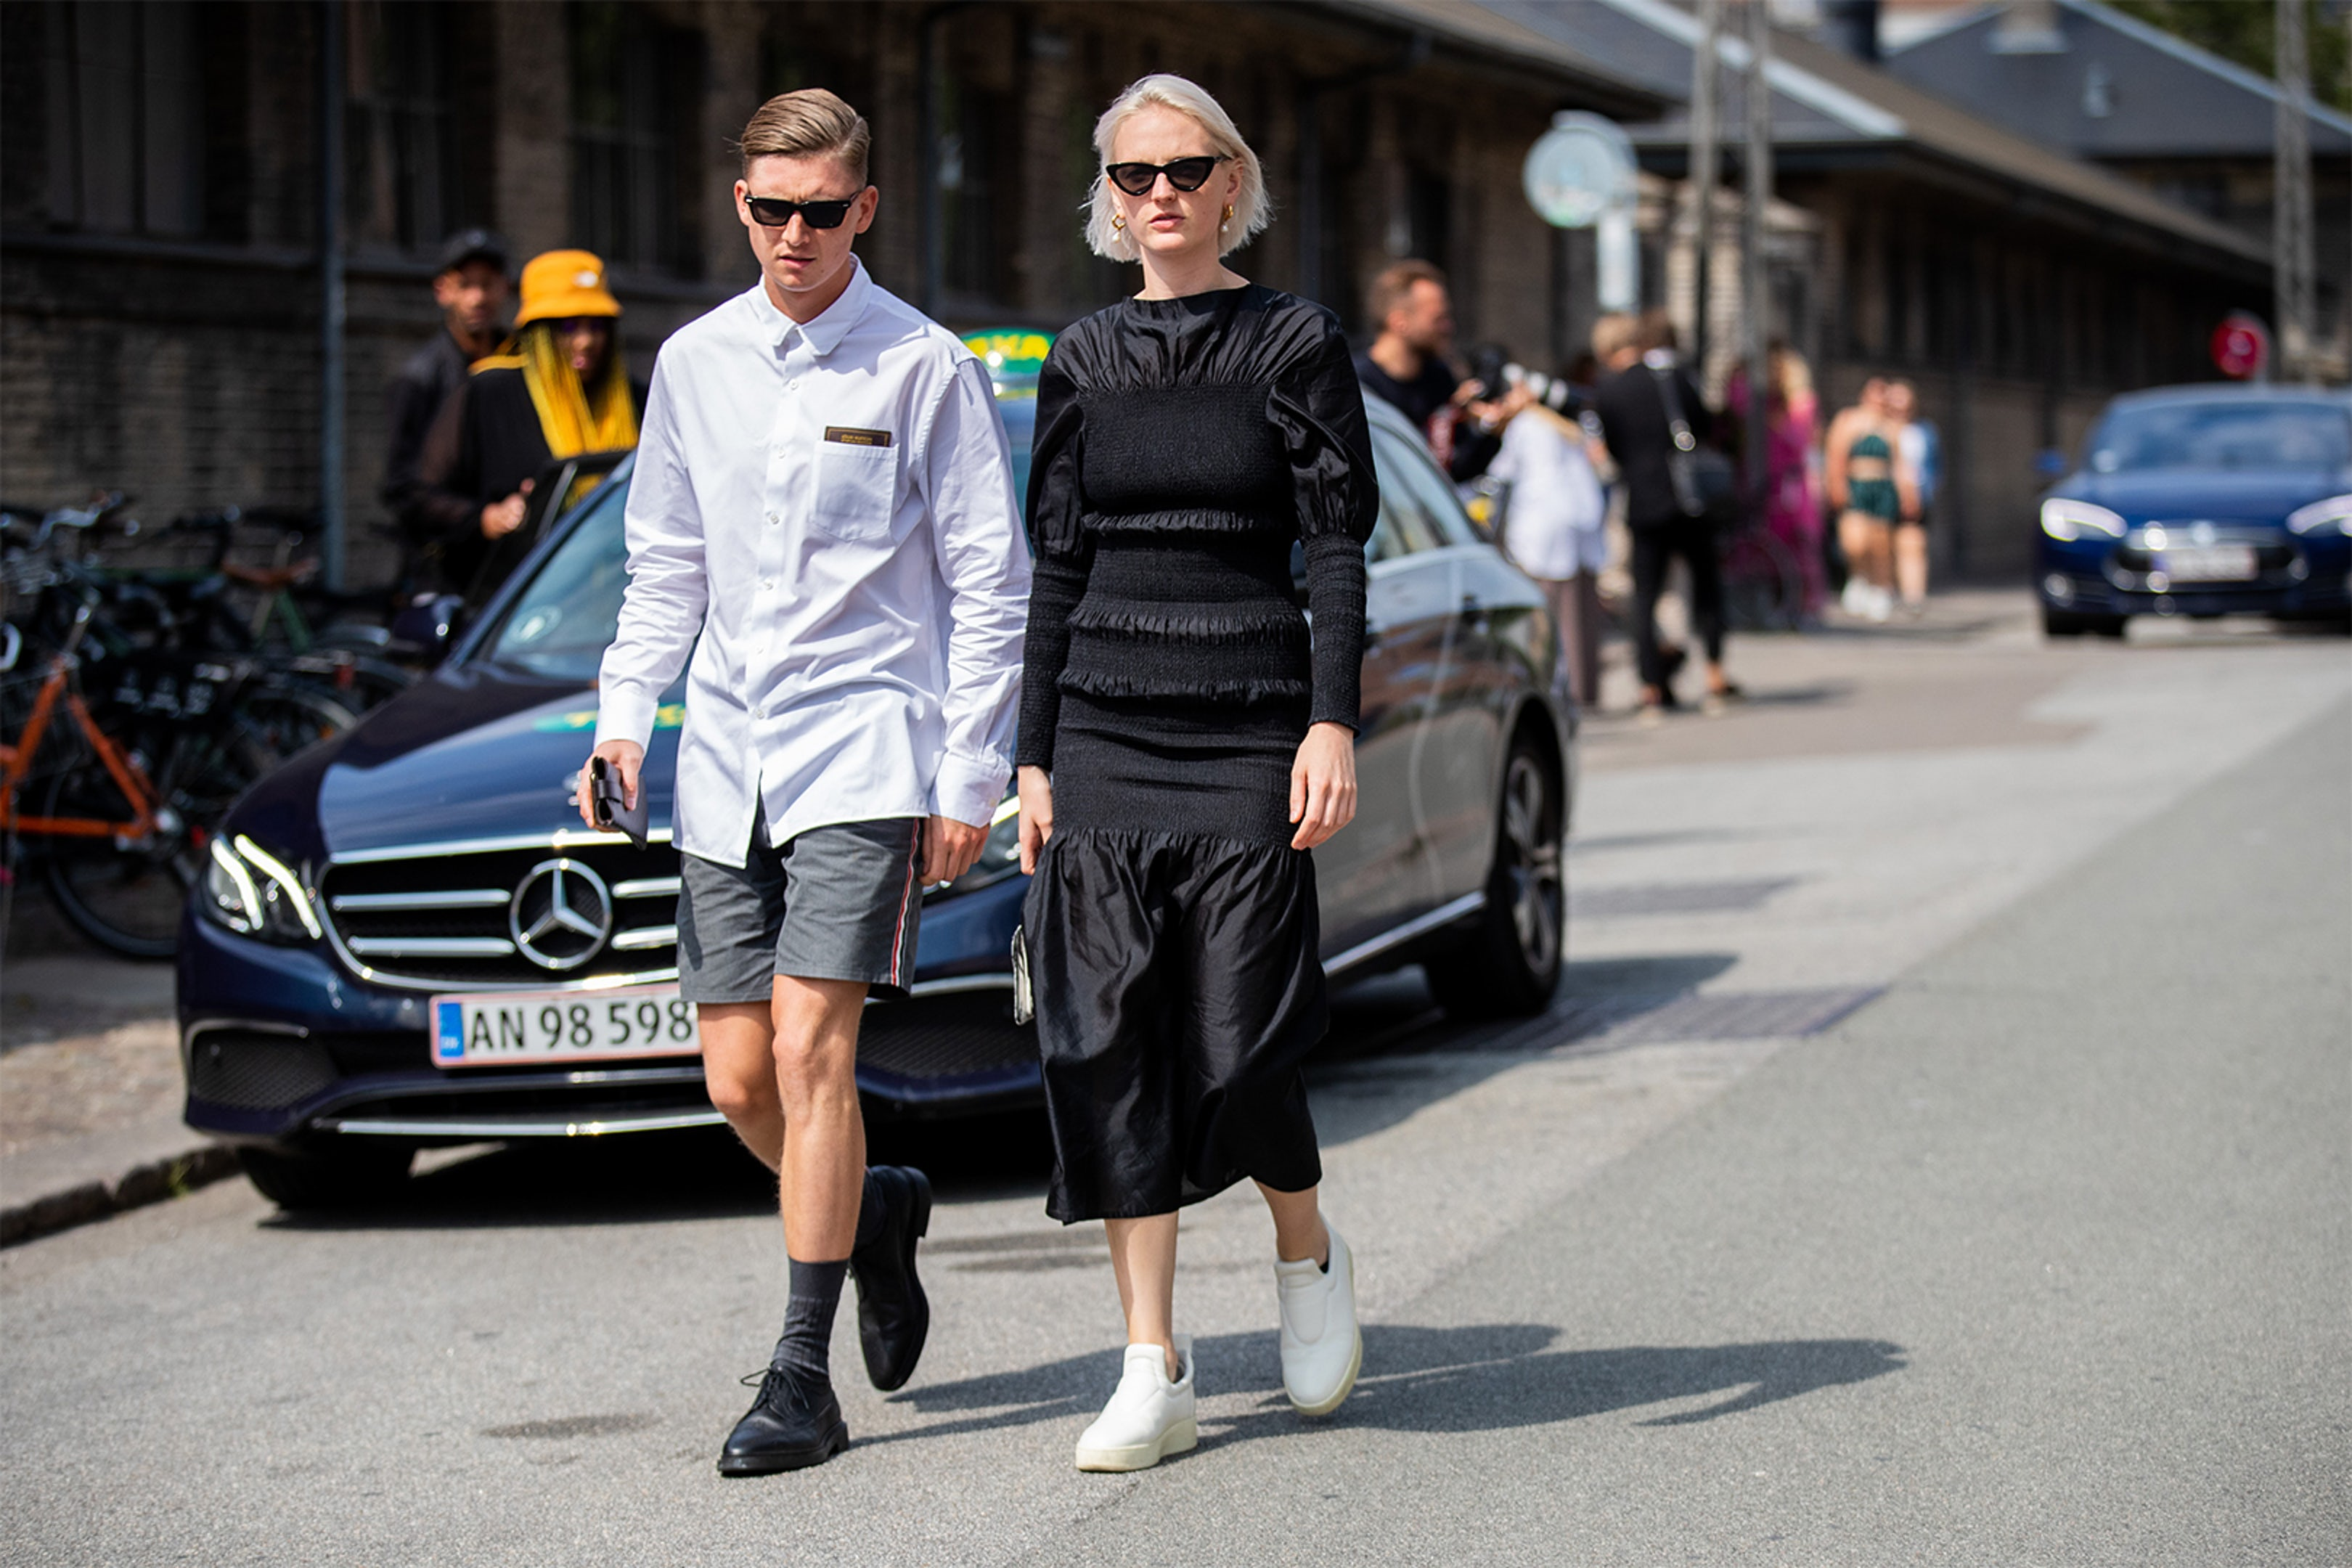 copenhagen fashion week couple 5